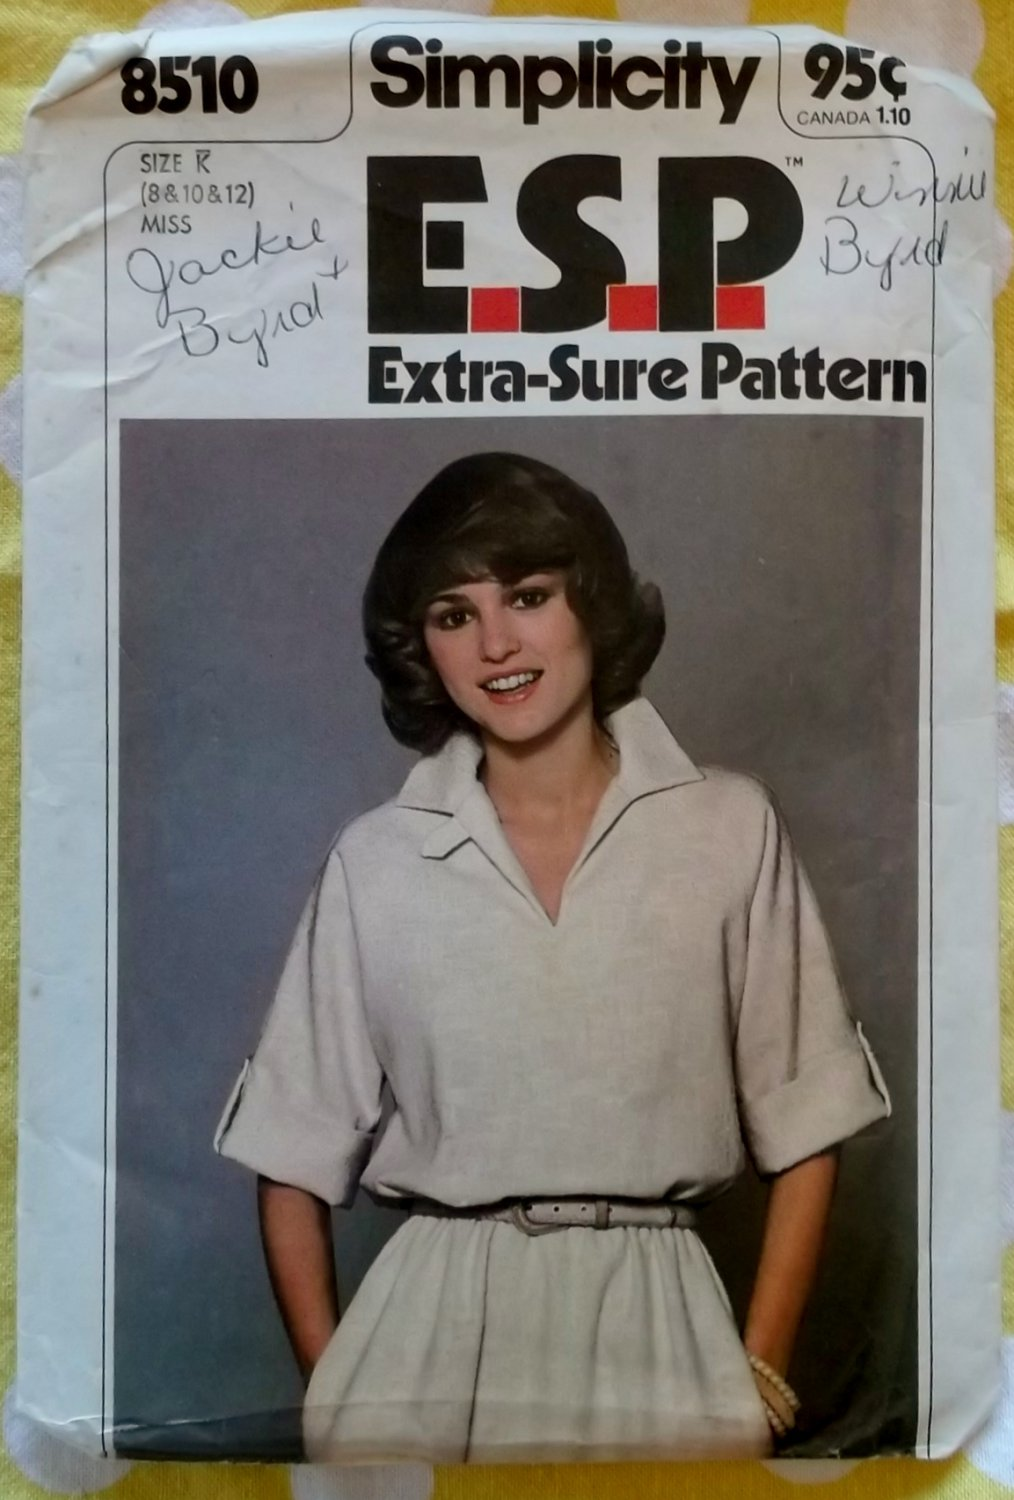 Vintage 70s Simplicity 8510 Pullover Raglan Sleeve Dress Pattern Uncut Size 8-12